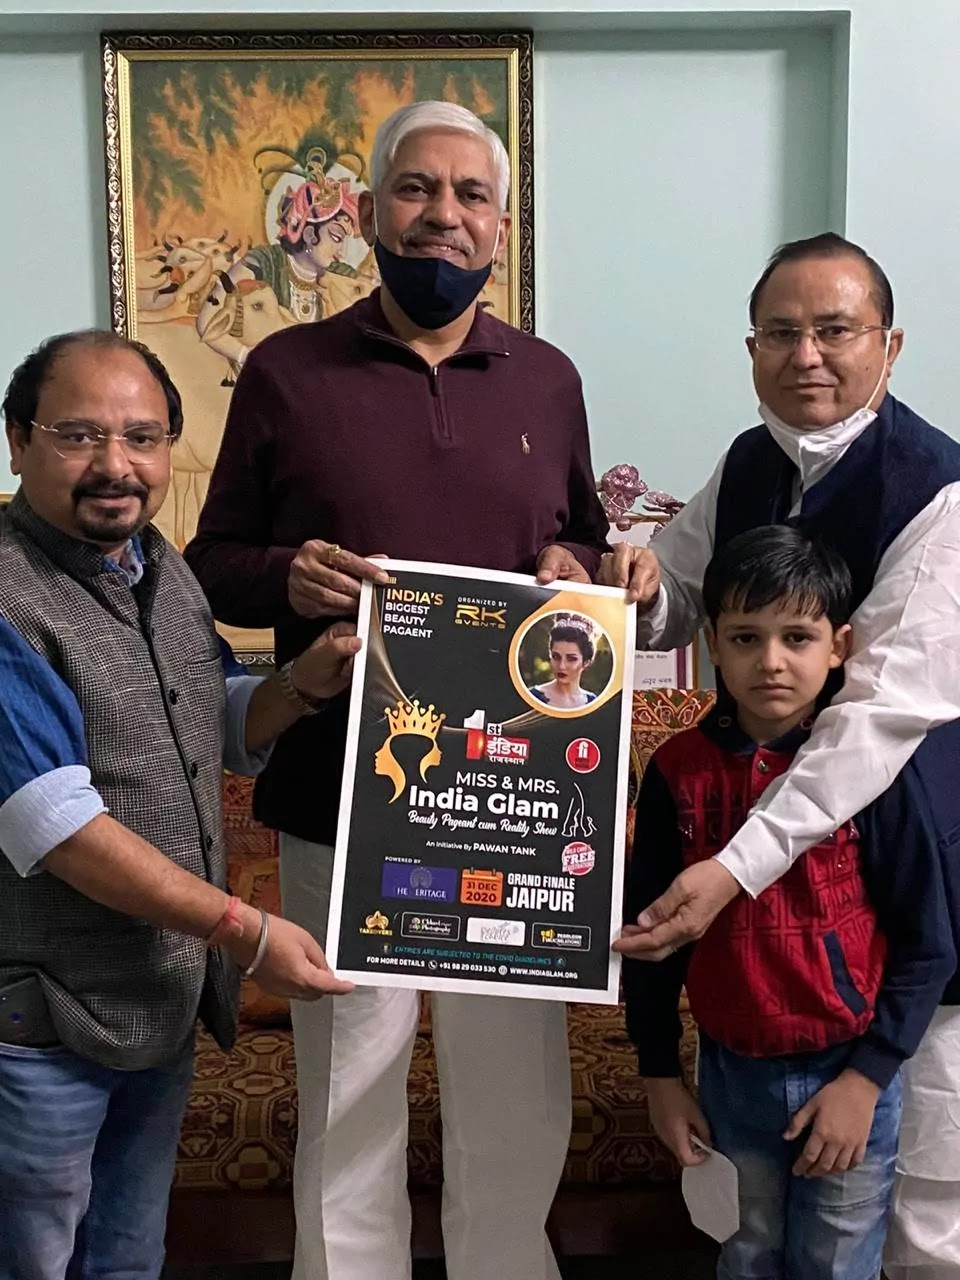 ACB-DG-Rajasthan-Police-released-the-poster-of-Miss-and-Mrs-India-Glam-to-be-organized-with-Covid-public-awareness-purpose